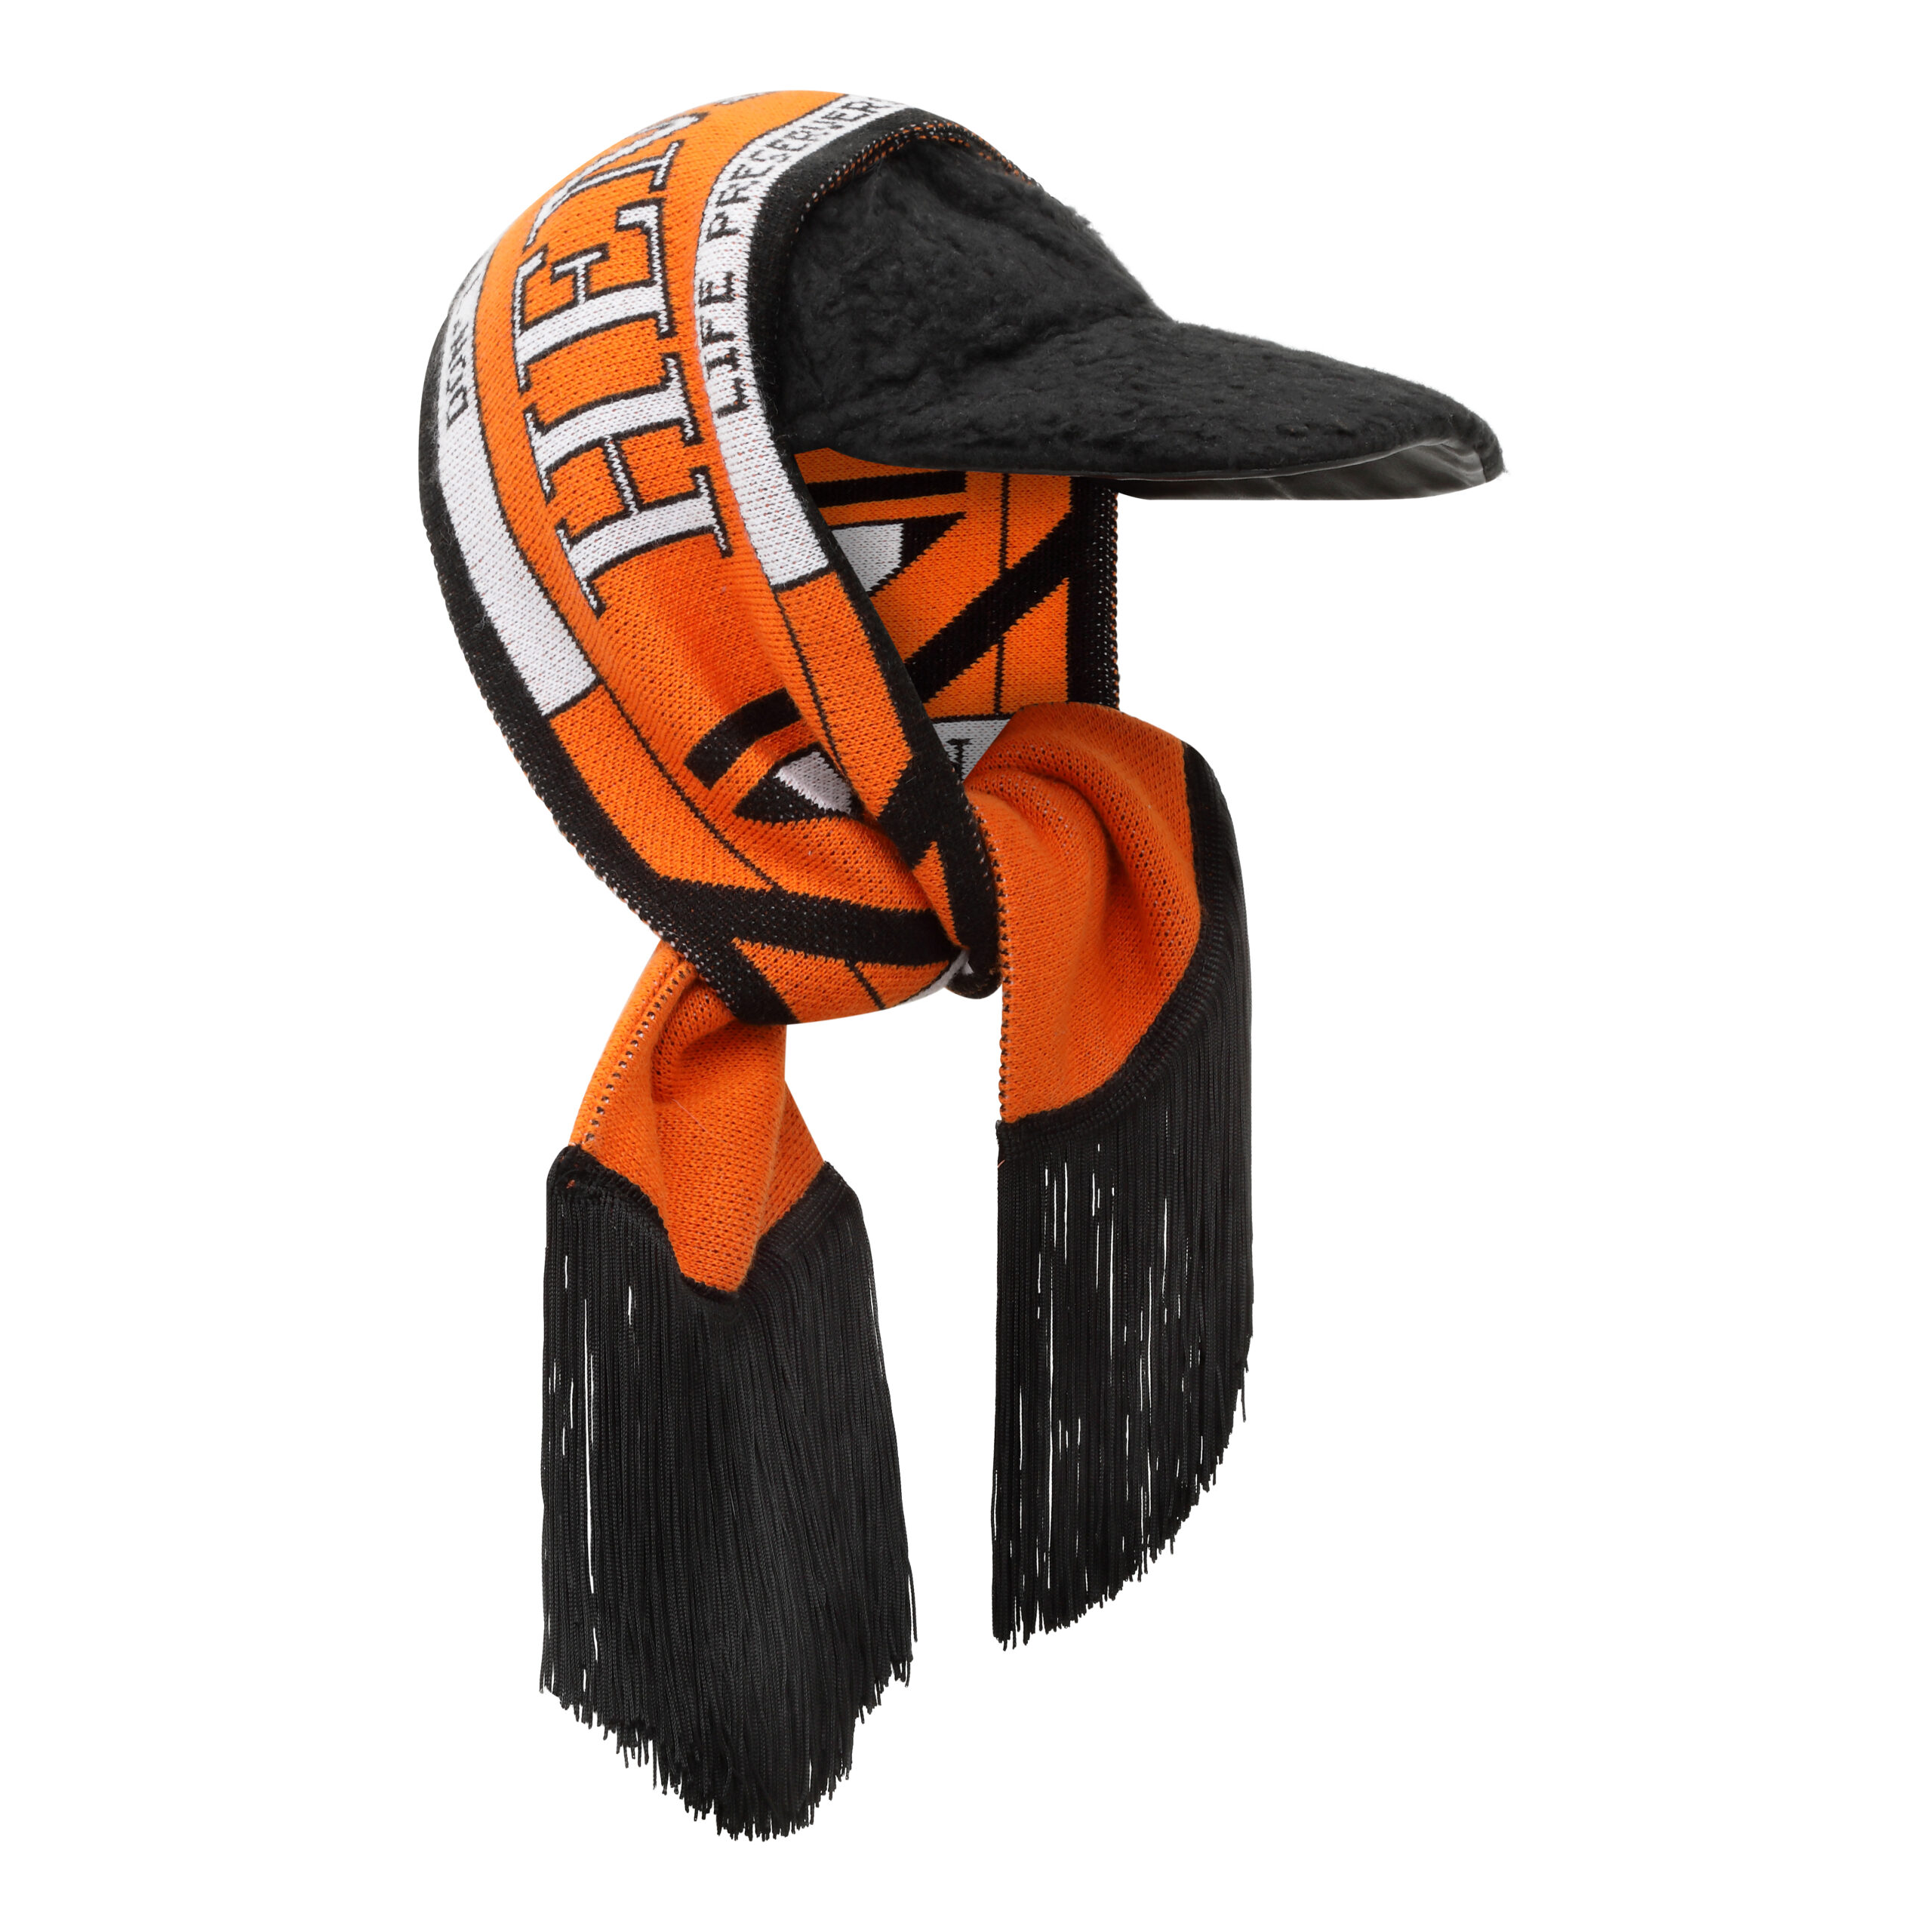 Oversized Cap with Detachable Scarf